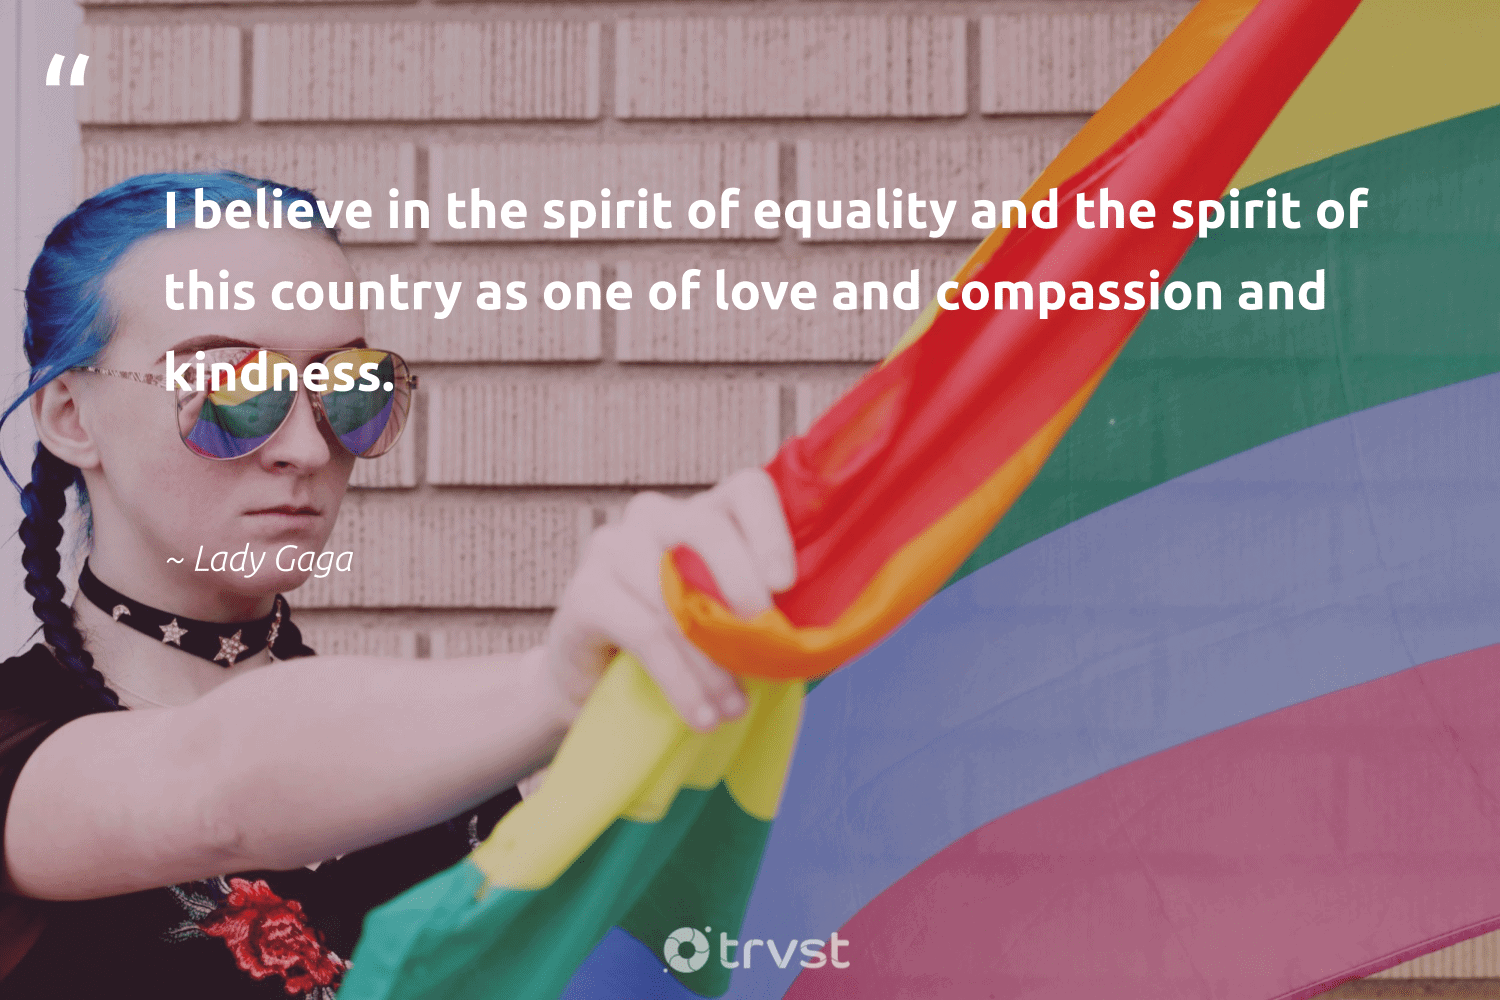 """""""I believe in the spirit of equality and the spirit of this country as one of love and compassion and kindness.""""  - Lady Gaga #trvst #quotes #equality #love #standup #giveback #socialgood #gogreen #empowerment #makeadifference #socialchange #dogood"""